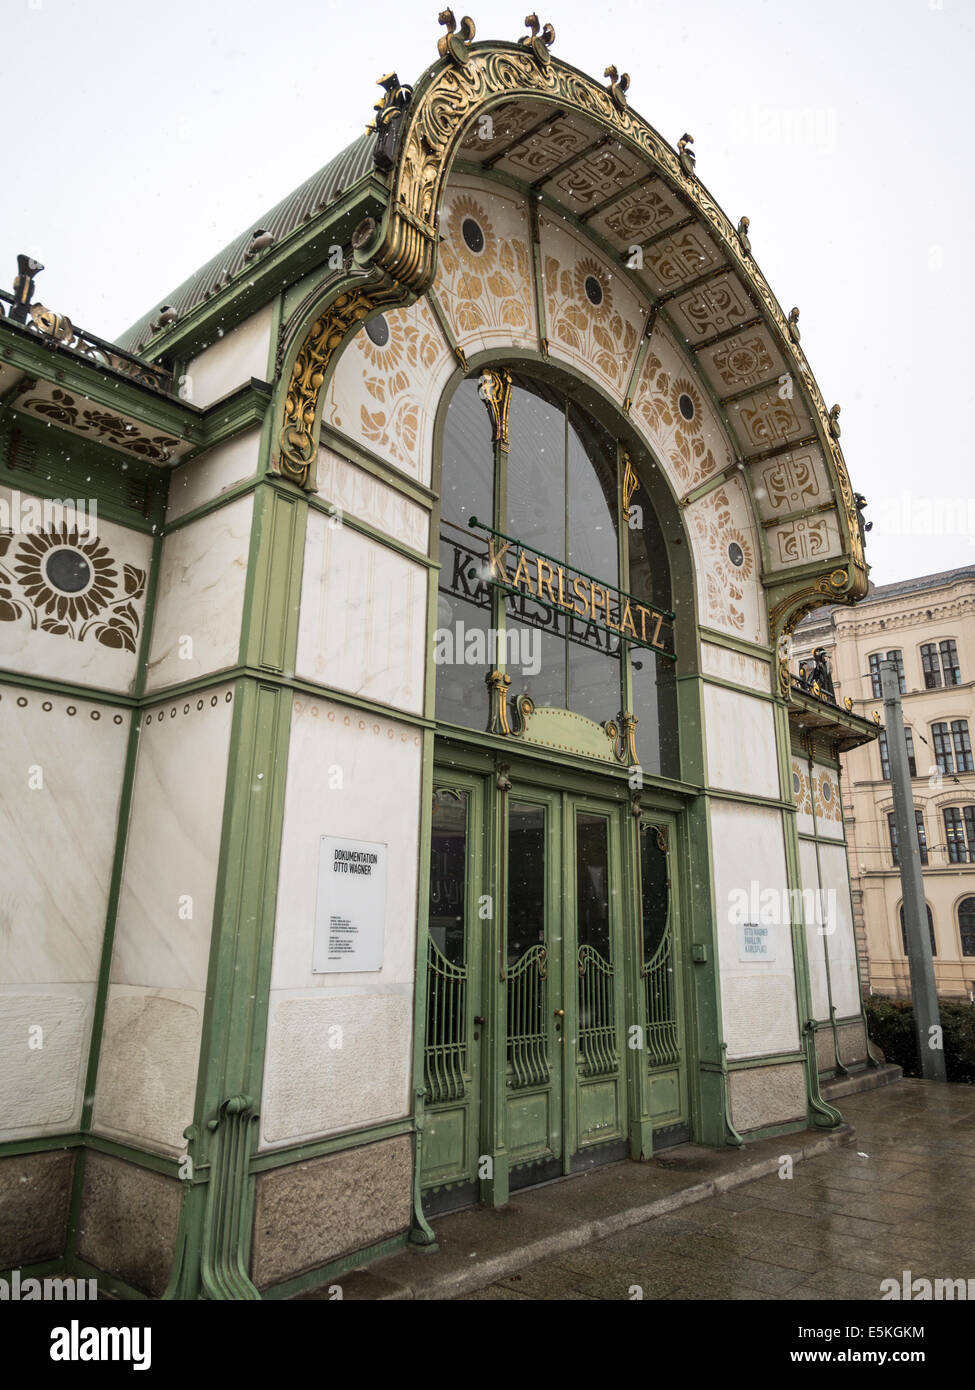 The Old Karlsplatz Underground Station Entrance in the snow. A highly decorated entrance structure, typical of the - Stock Image